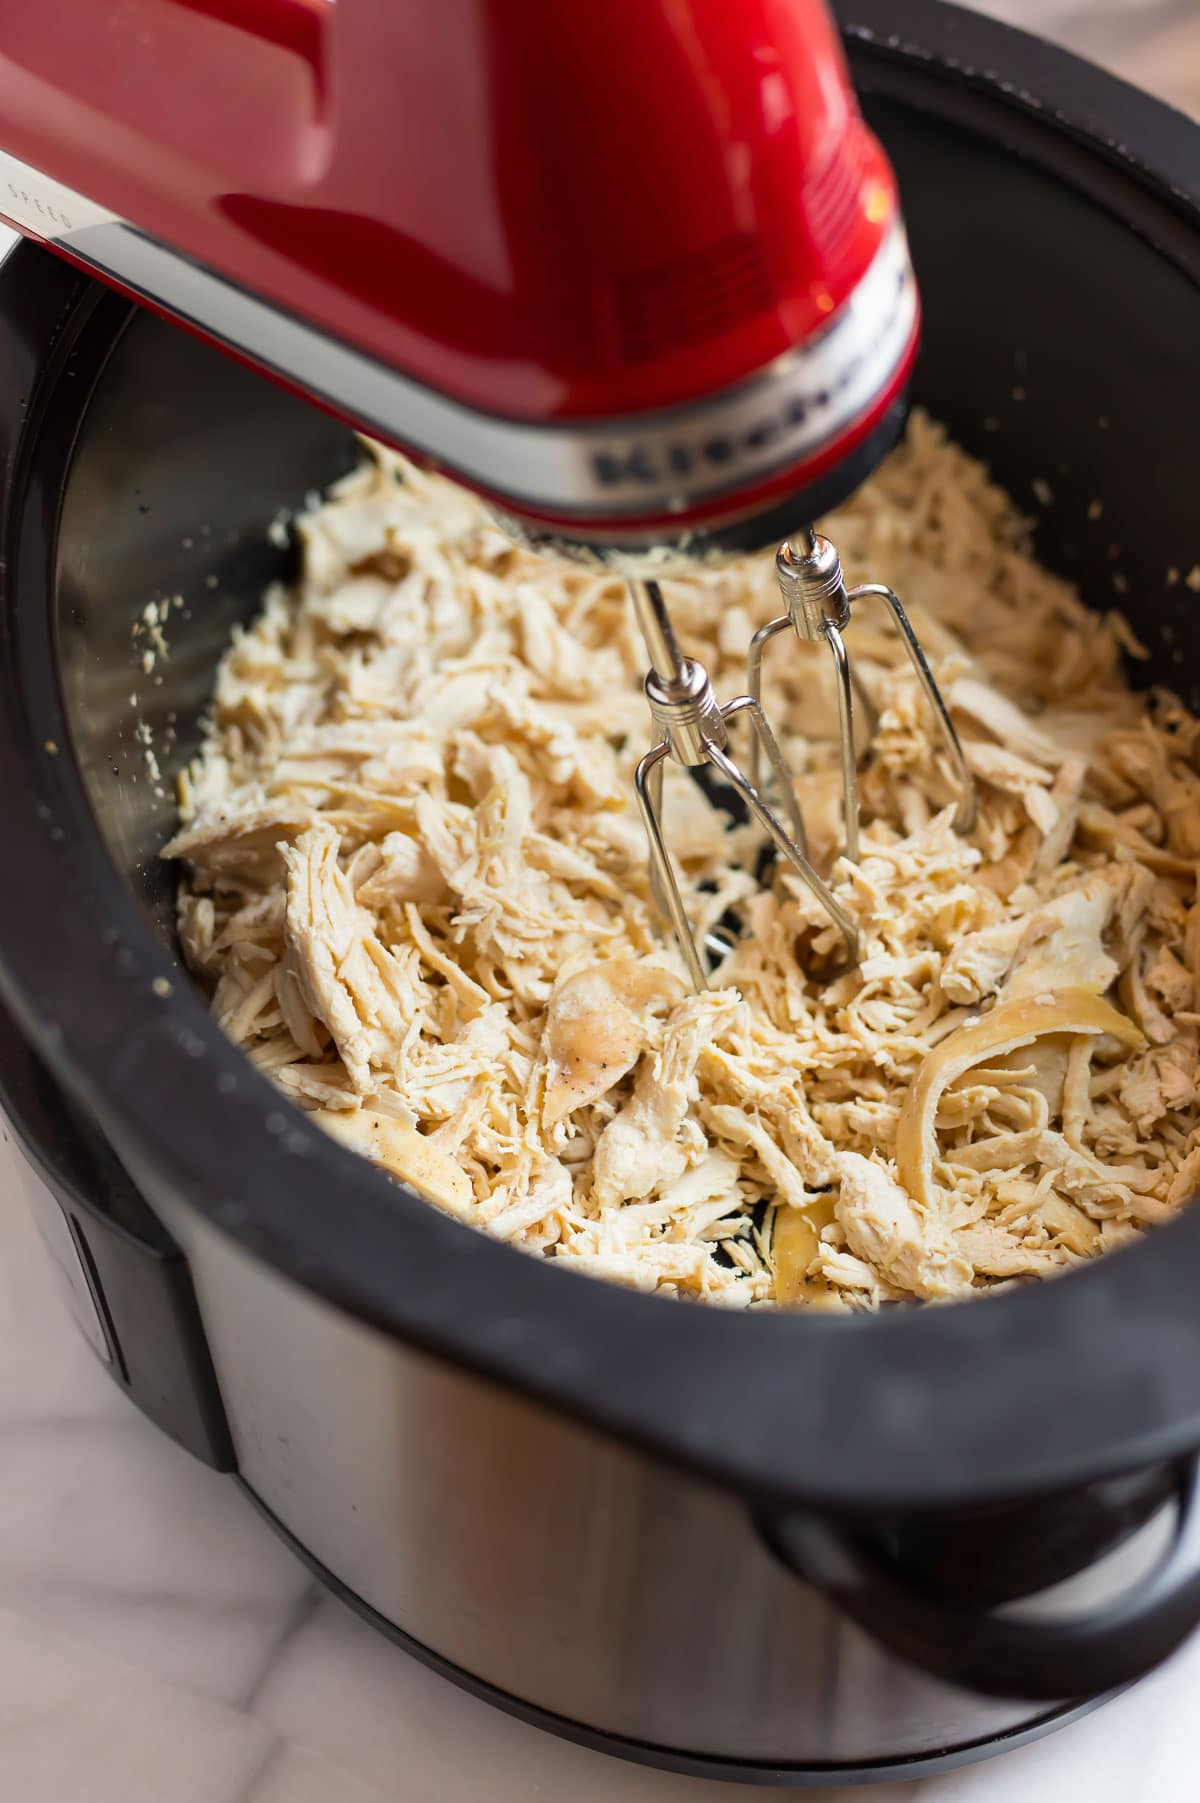 Chicken being shredded in a slow cooker with a hand mixer